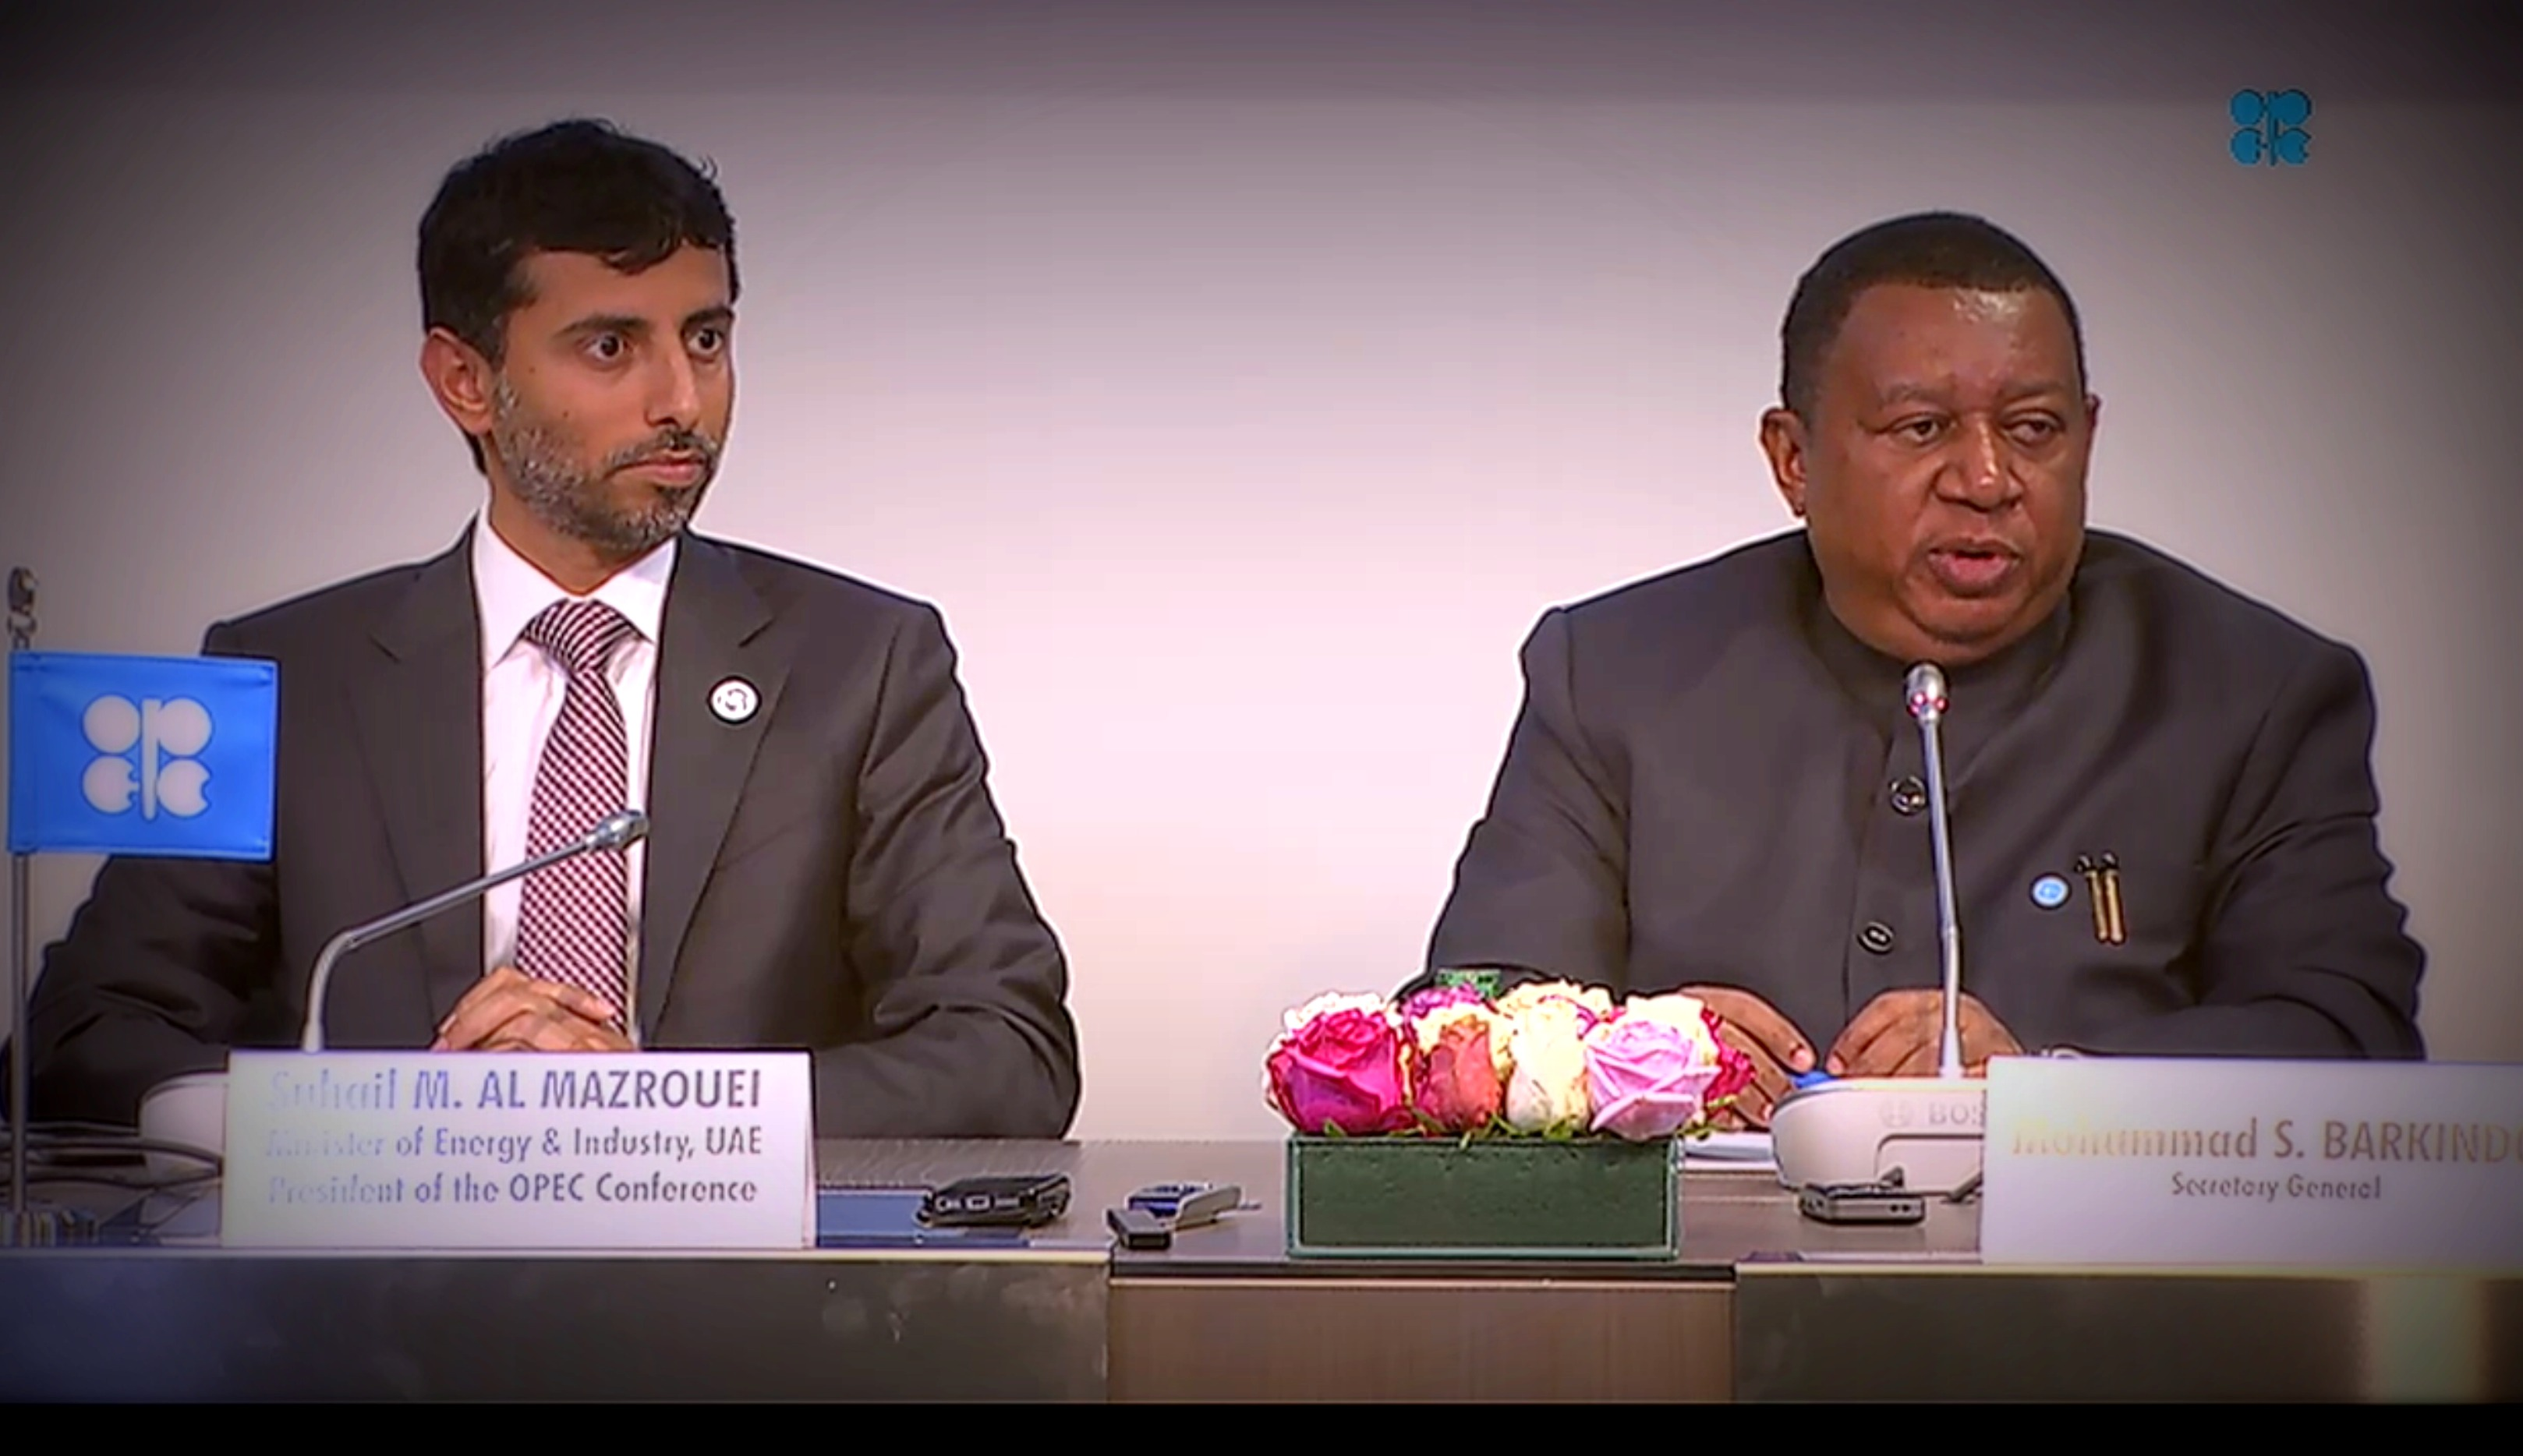 Suhail Mohamed Al Mazrouei, UAE energy minister, and Mohammad Barkindo, OPEC Secretary General, during a press conference following OPEC's 174th meeting in Vienna June 22. (Source: OPEC)